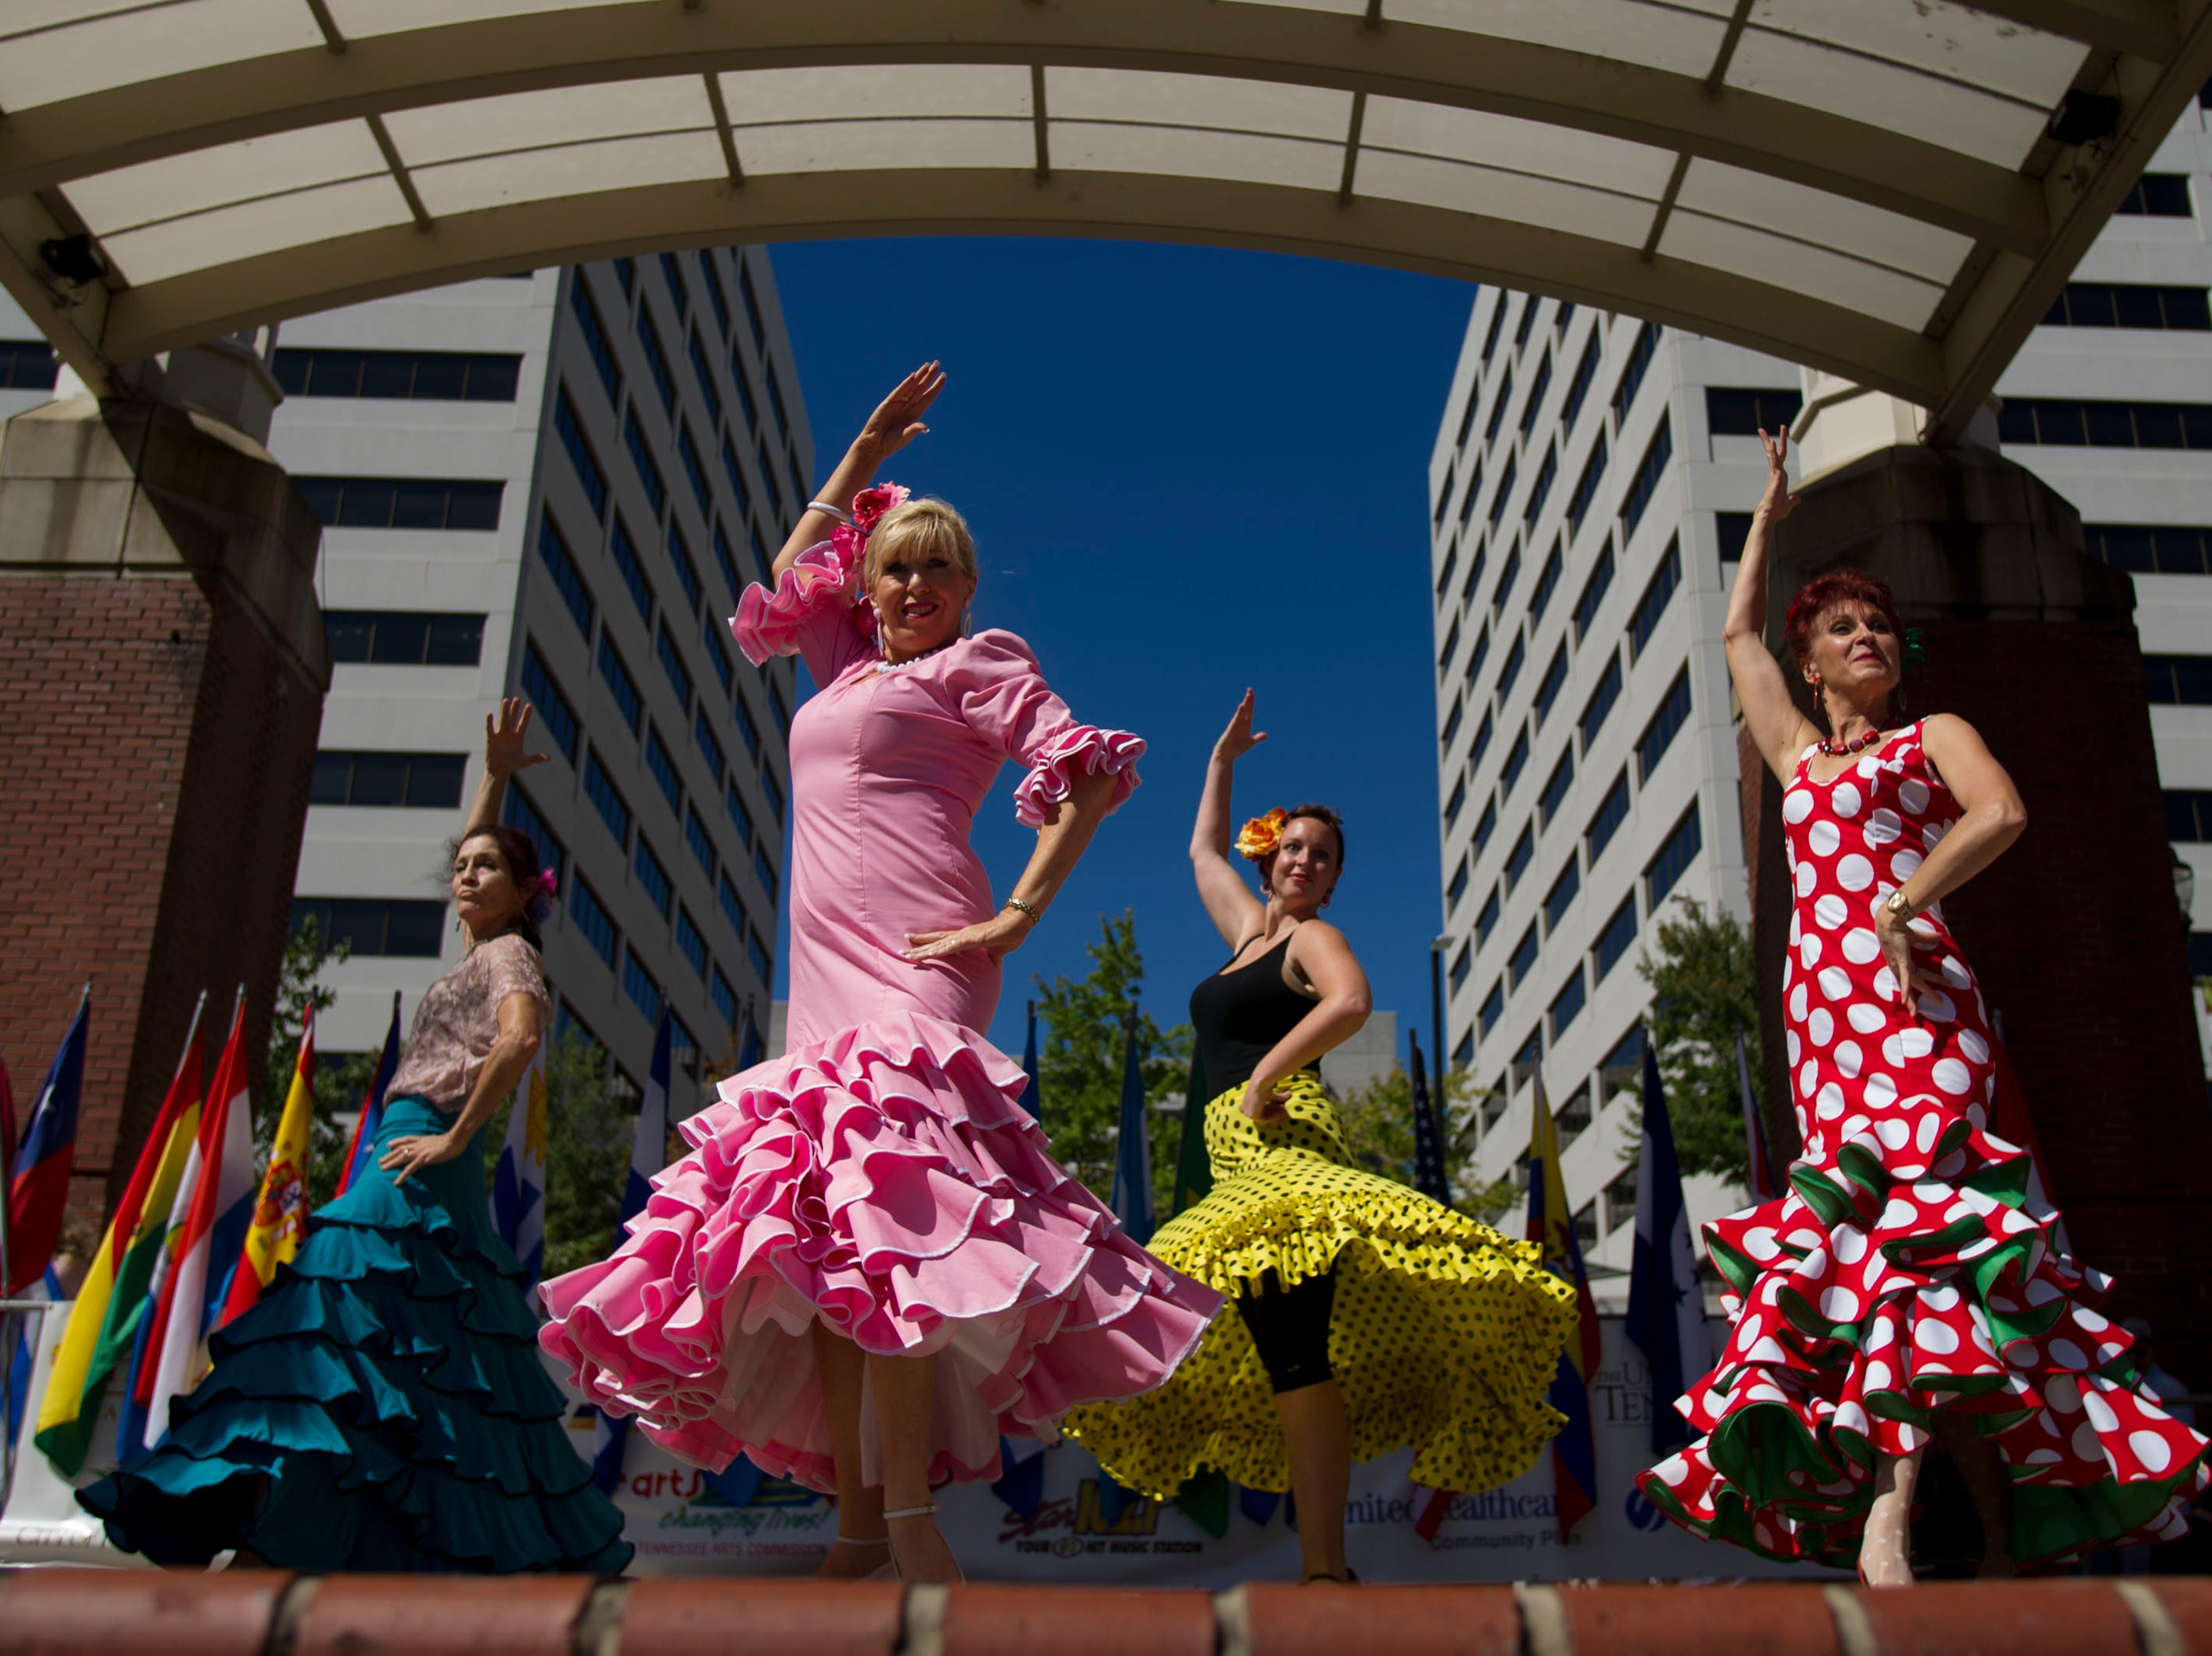 Members of Pasion Flamenca West Knoxville, from left, Catherine Green, Sharon Mansoor, Martha Prewitt, and Lucia Androsnescu Flamenco dance for the crowd at the Hola Festival at Market Square on Sunday, September 22, 2013 